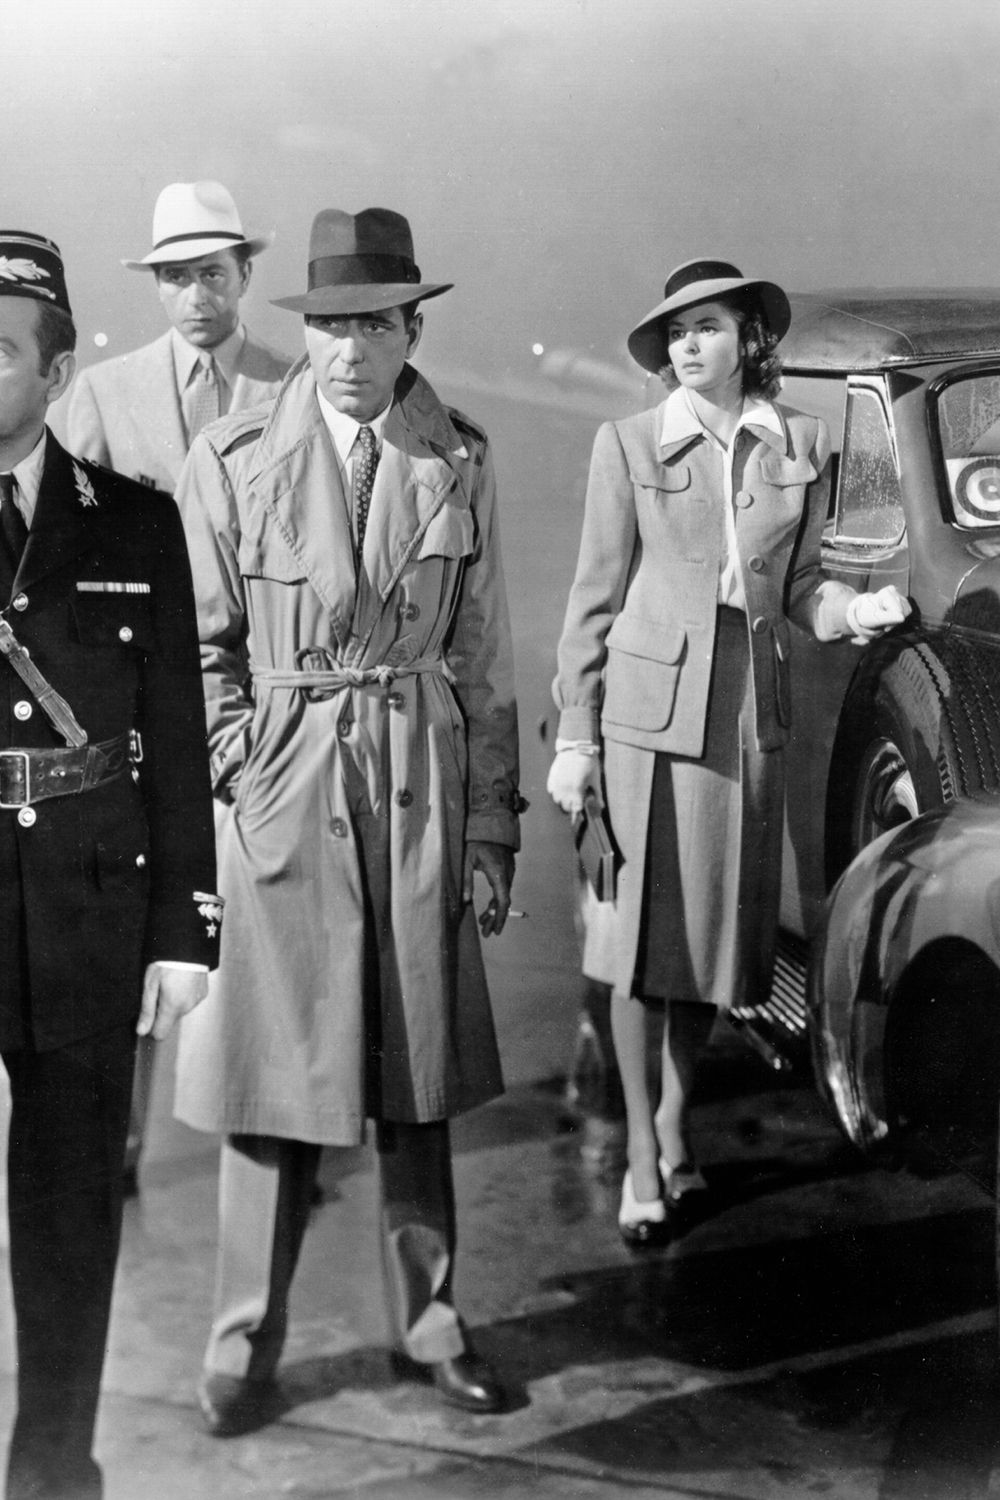 los angeles 1942 a movie still of l r unidentified, claude rains, paul henreid, humphrey bogart and ingrid bergman on the set of the warner bros classic film 'casablanca' in 1942 in los angeles, california photo by michael ochs archivesgetty images